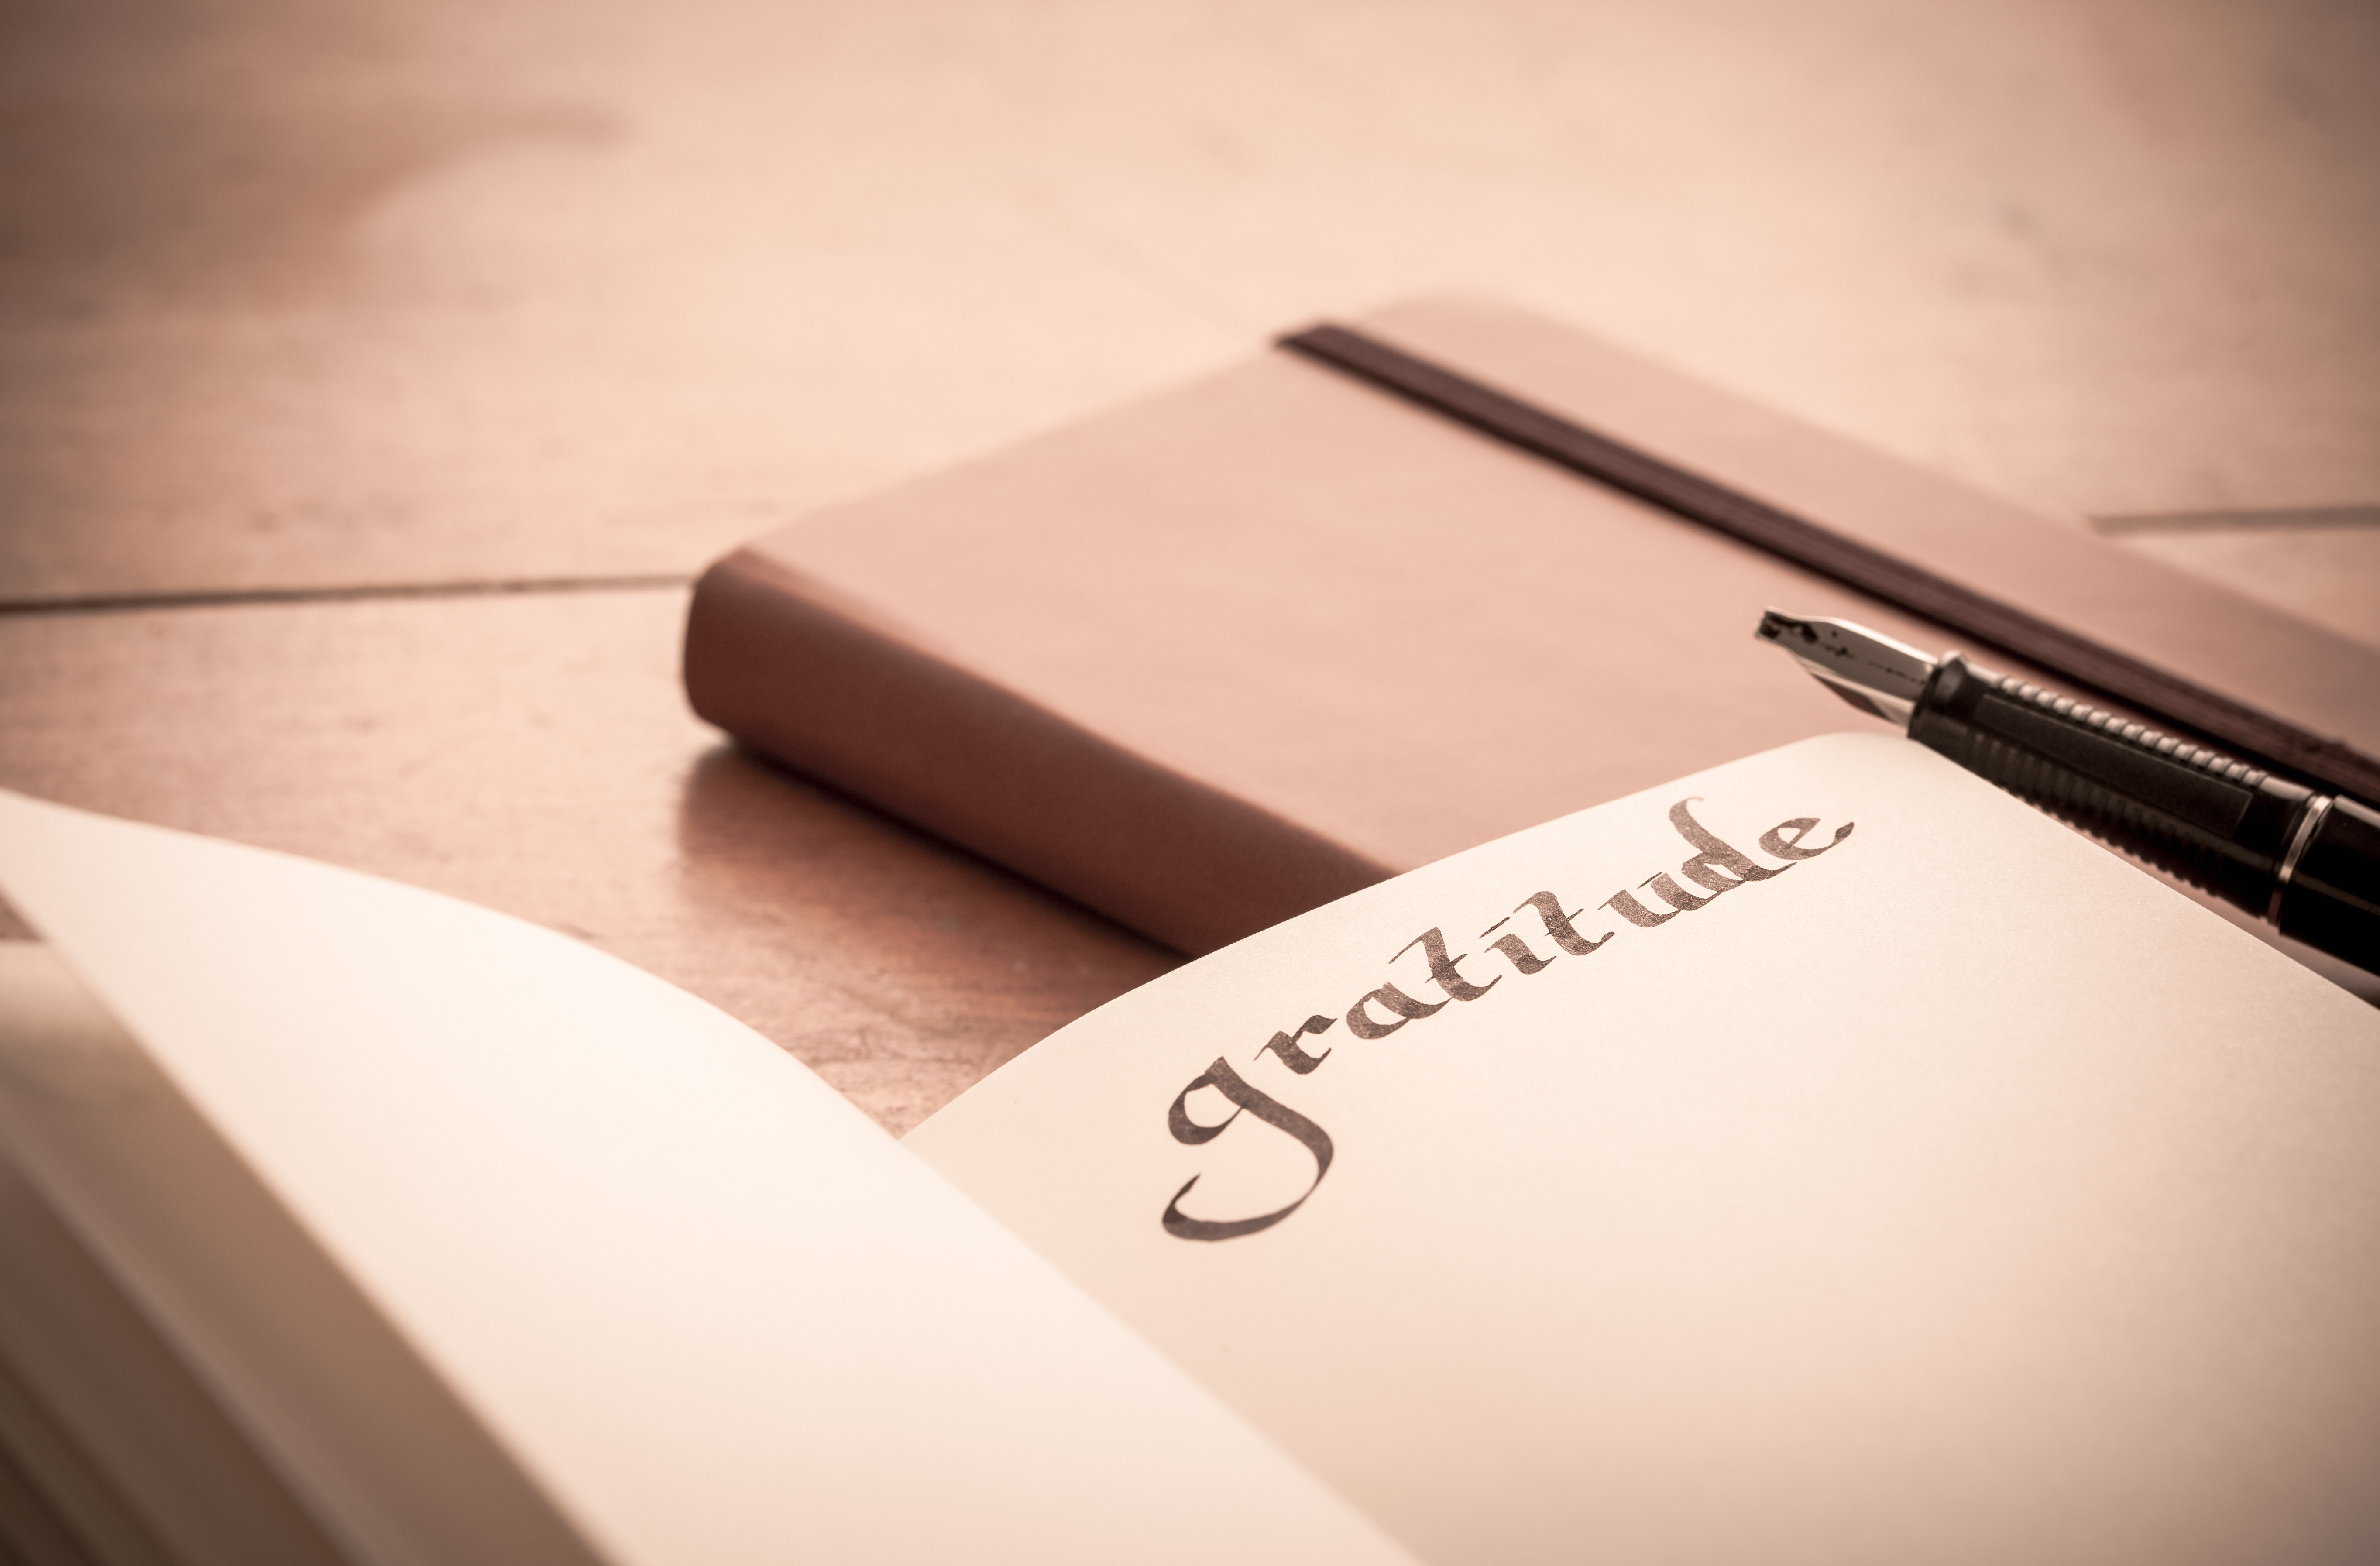 Gratitude journal, blessings small and large, reflections on what we have vs. what we don't have, giving thanks